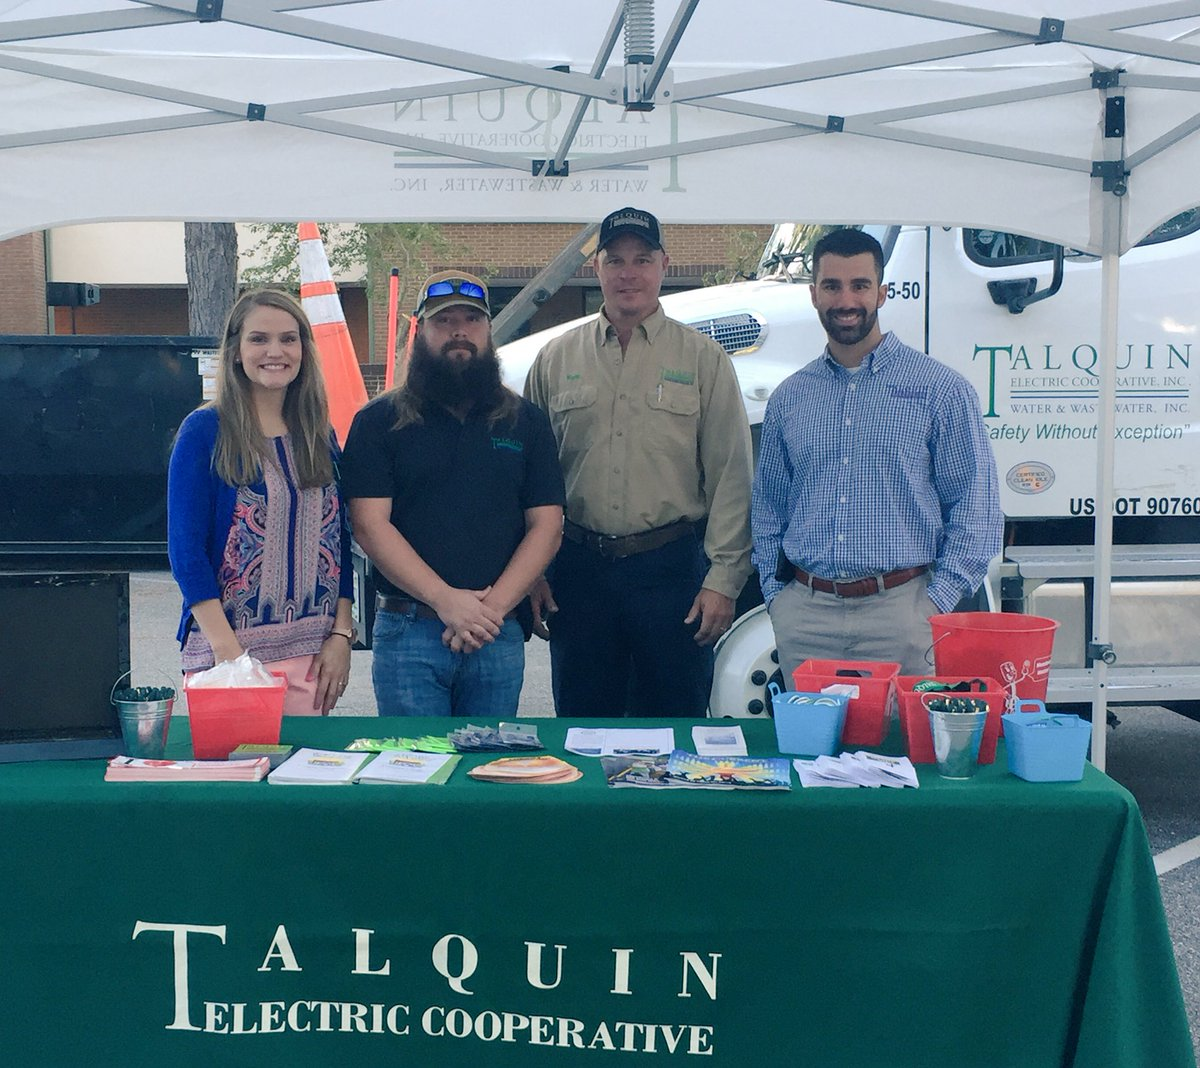 Talquin Electric Cooperative On Twitter Come See Us At Leon Works Expo To Learn About Different Career Opportunities In The Big Bend Area Leonworks 19 better manage your talquin utilities with the talquin app! twitter